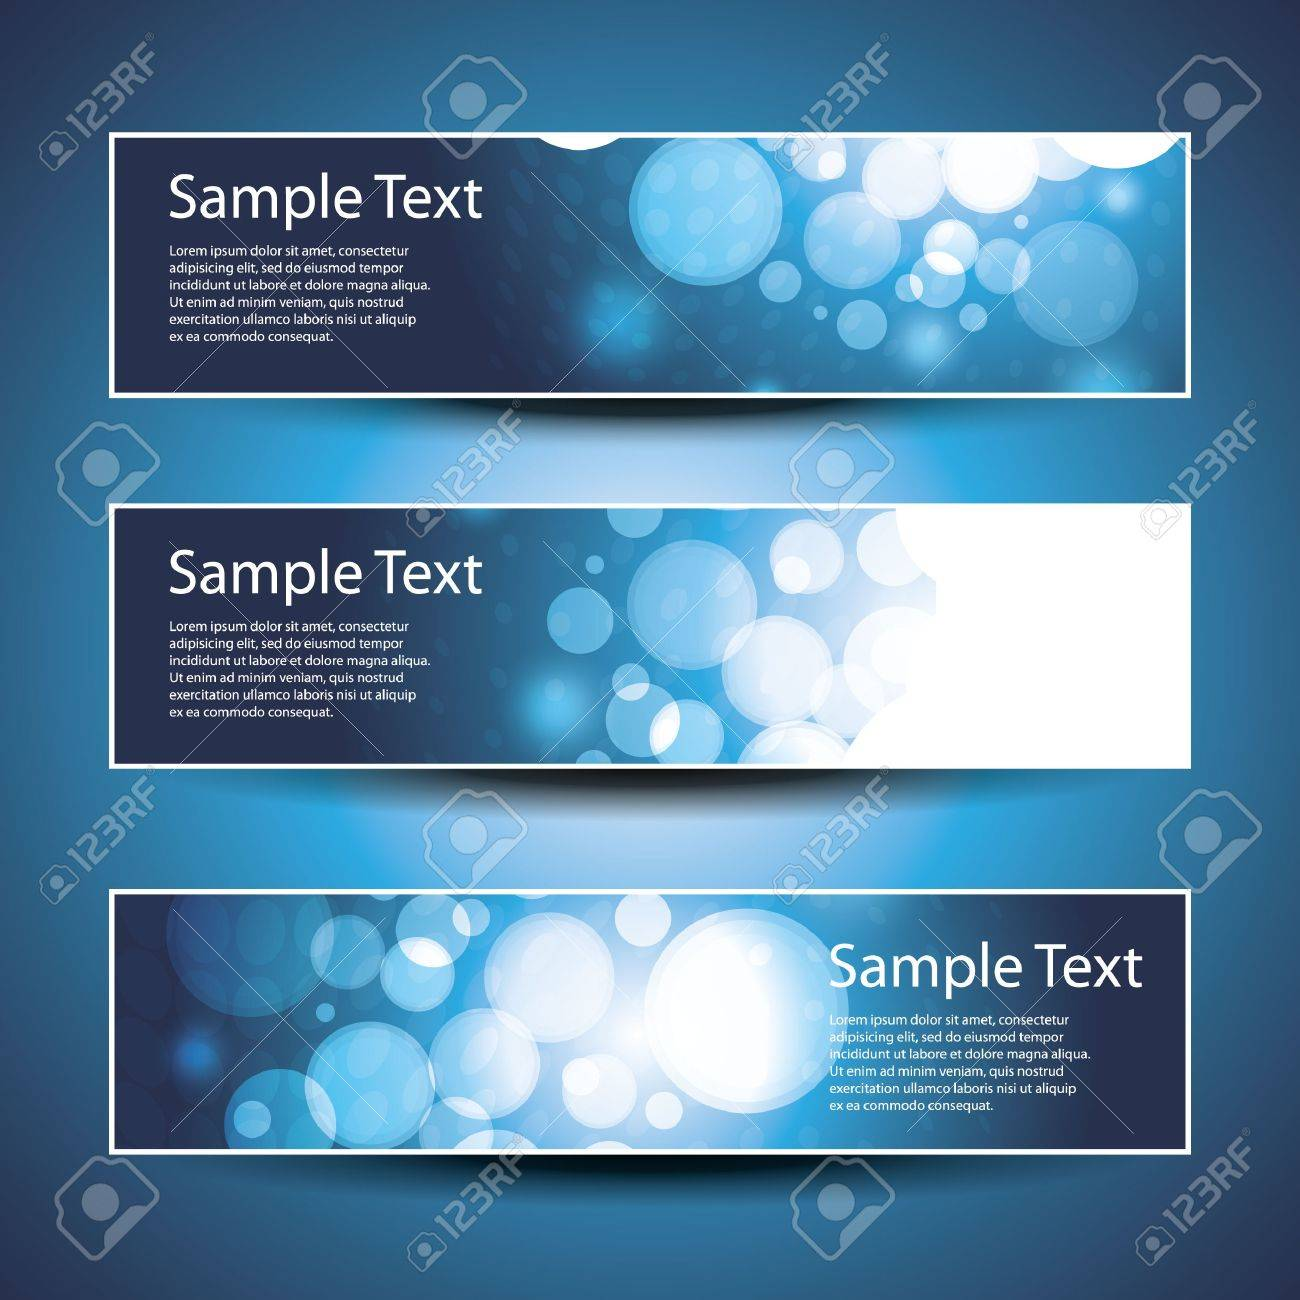 Three Header Designs Stock Vector - 12035307